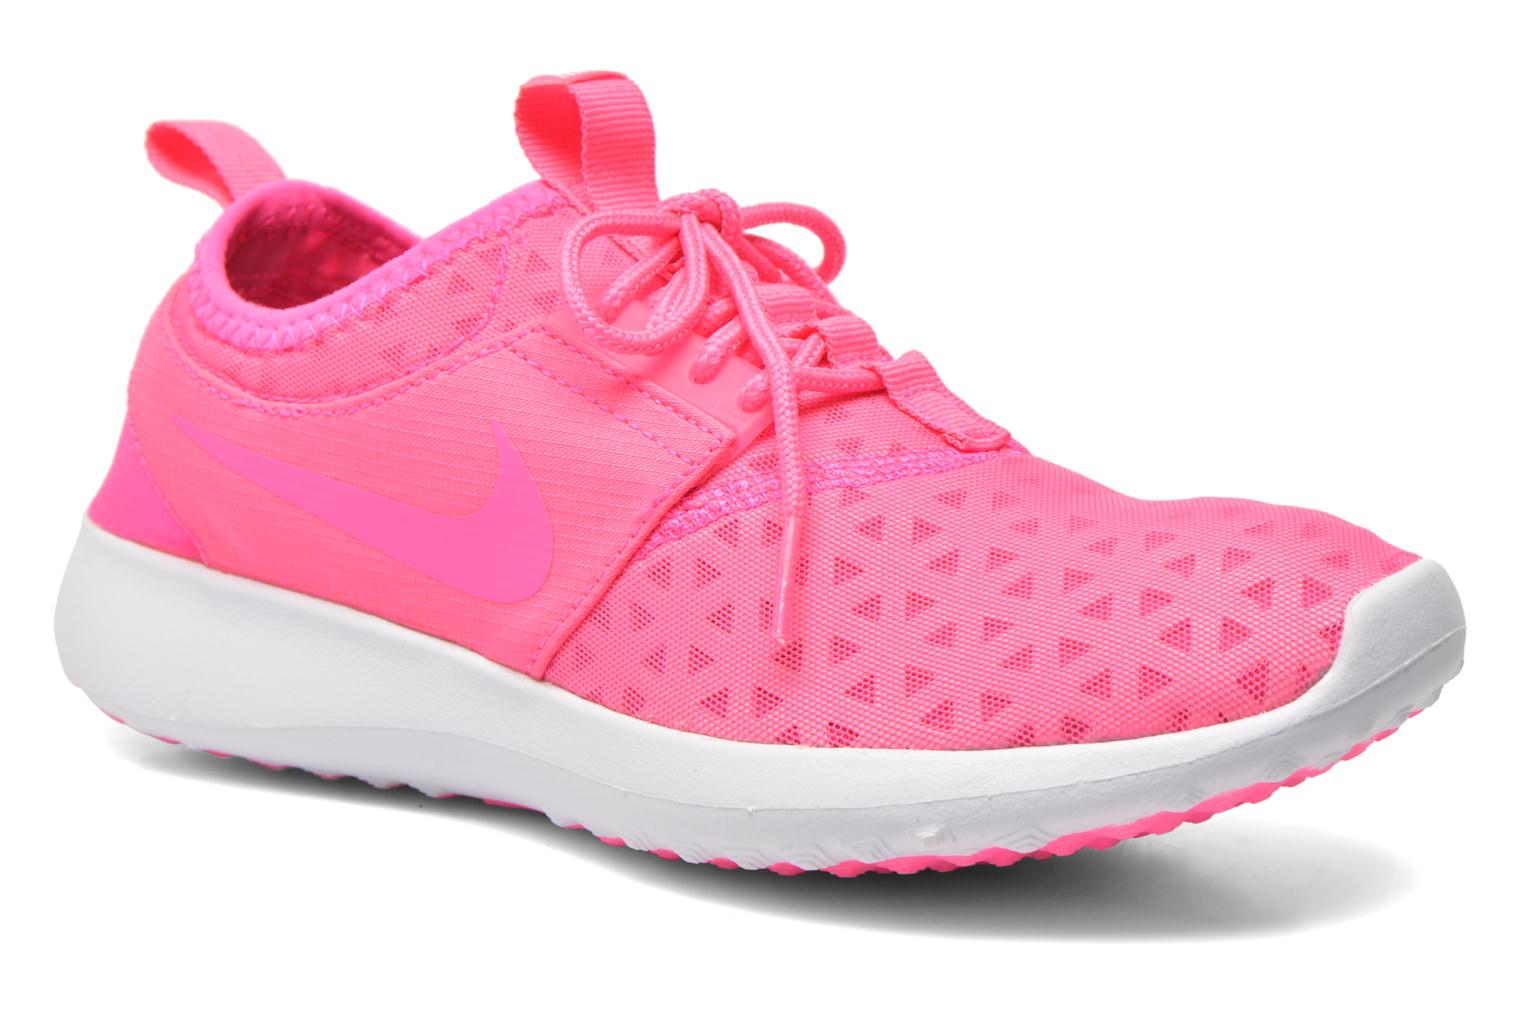 Baskets Nike Wmns Nike Juvenate Rose vue détail/paire